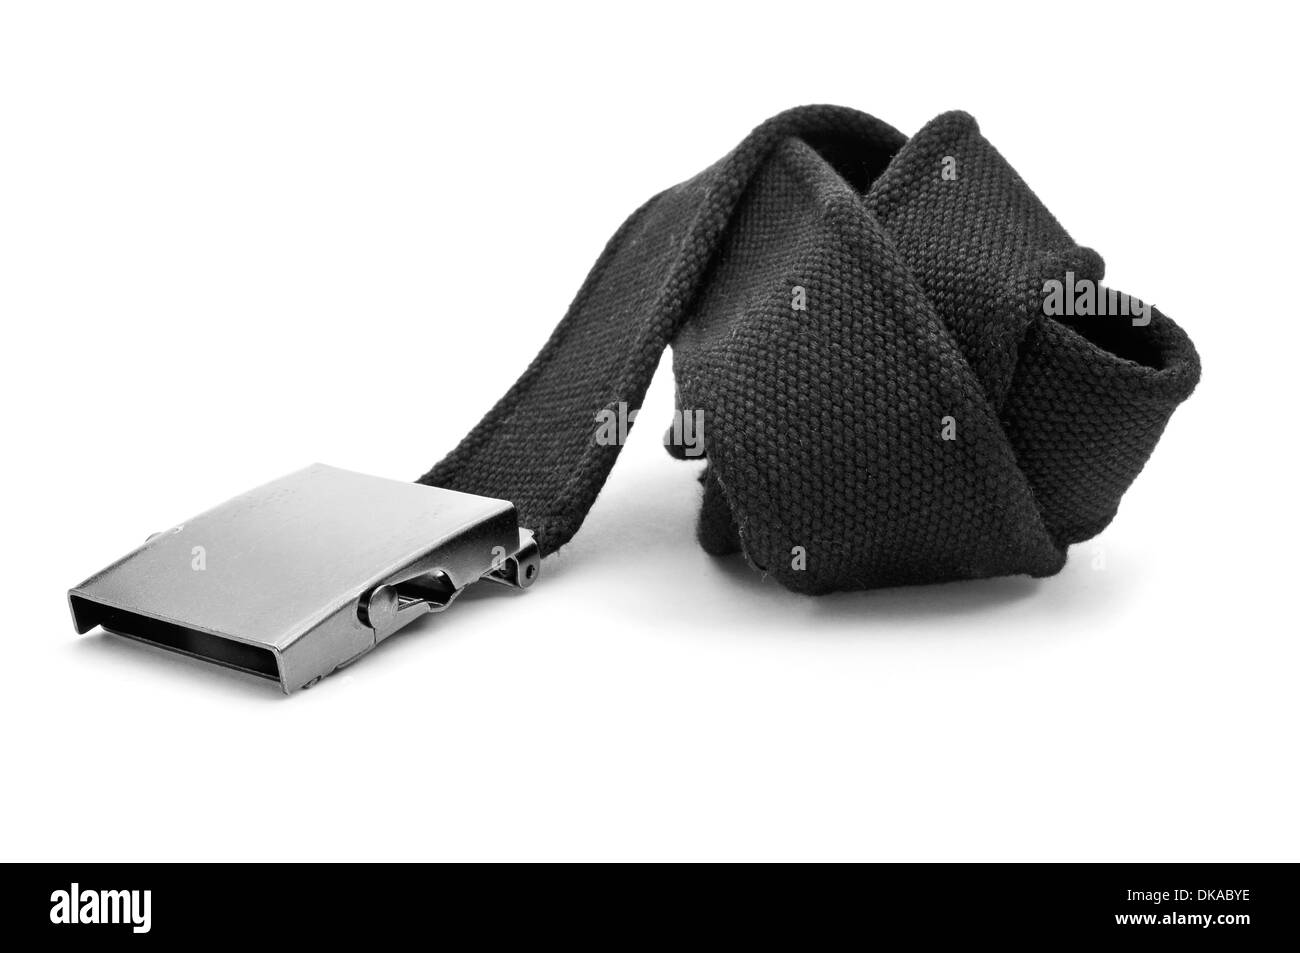 an adjustable black belt with a box-frame buckle on a white background - Stock Image